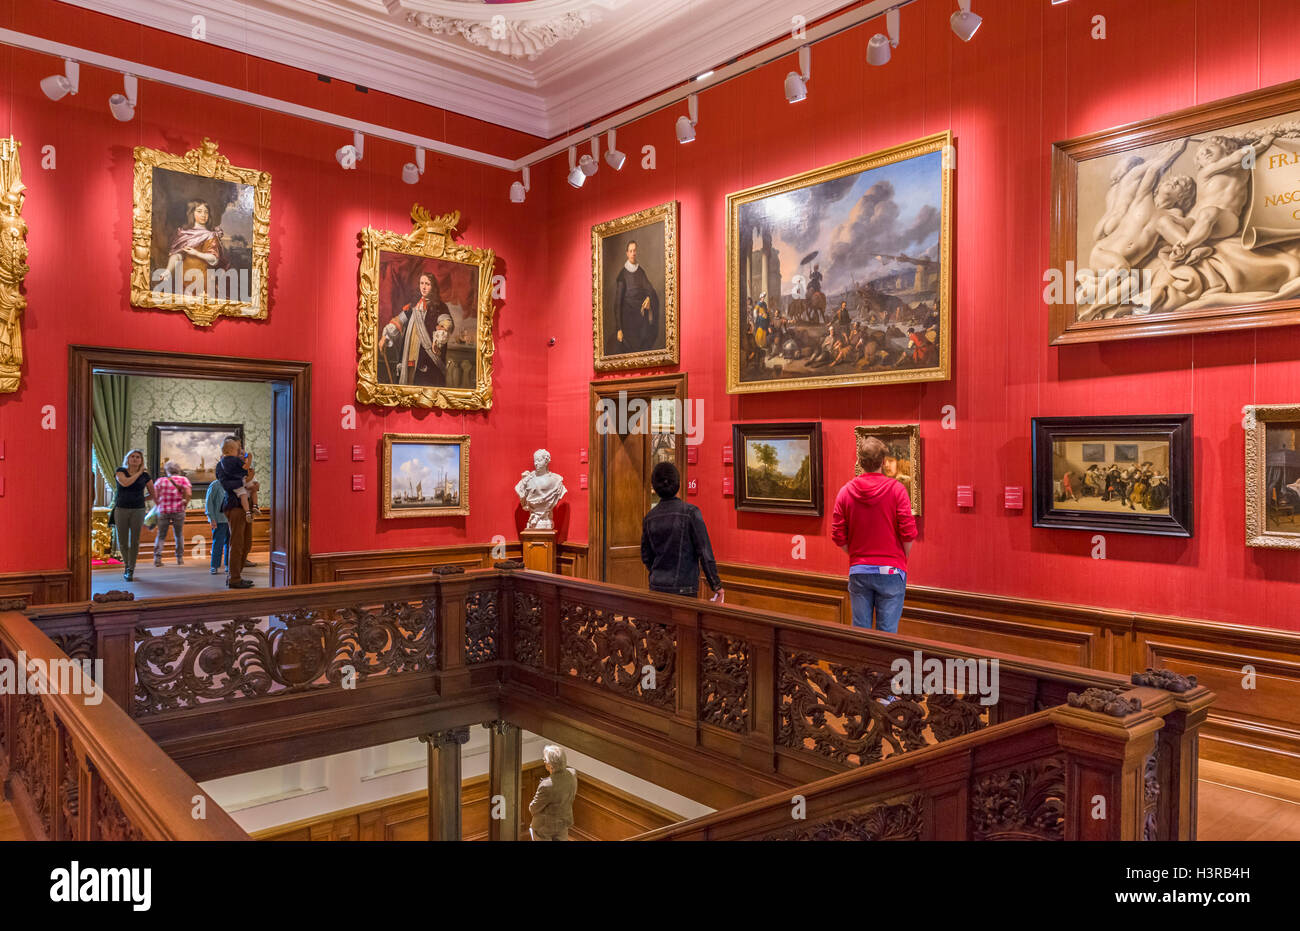 Interior of the Mauritshuis art museum, The Hague, Netherlands - Stock Image